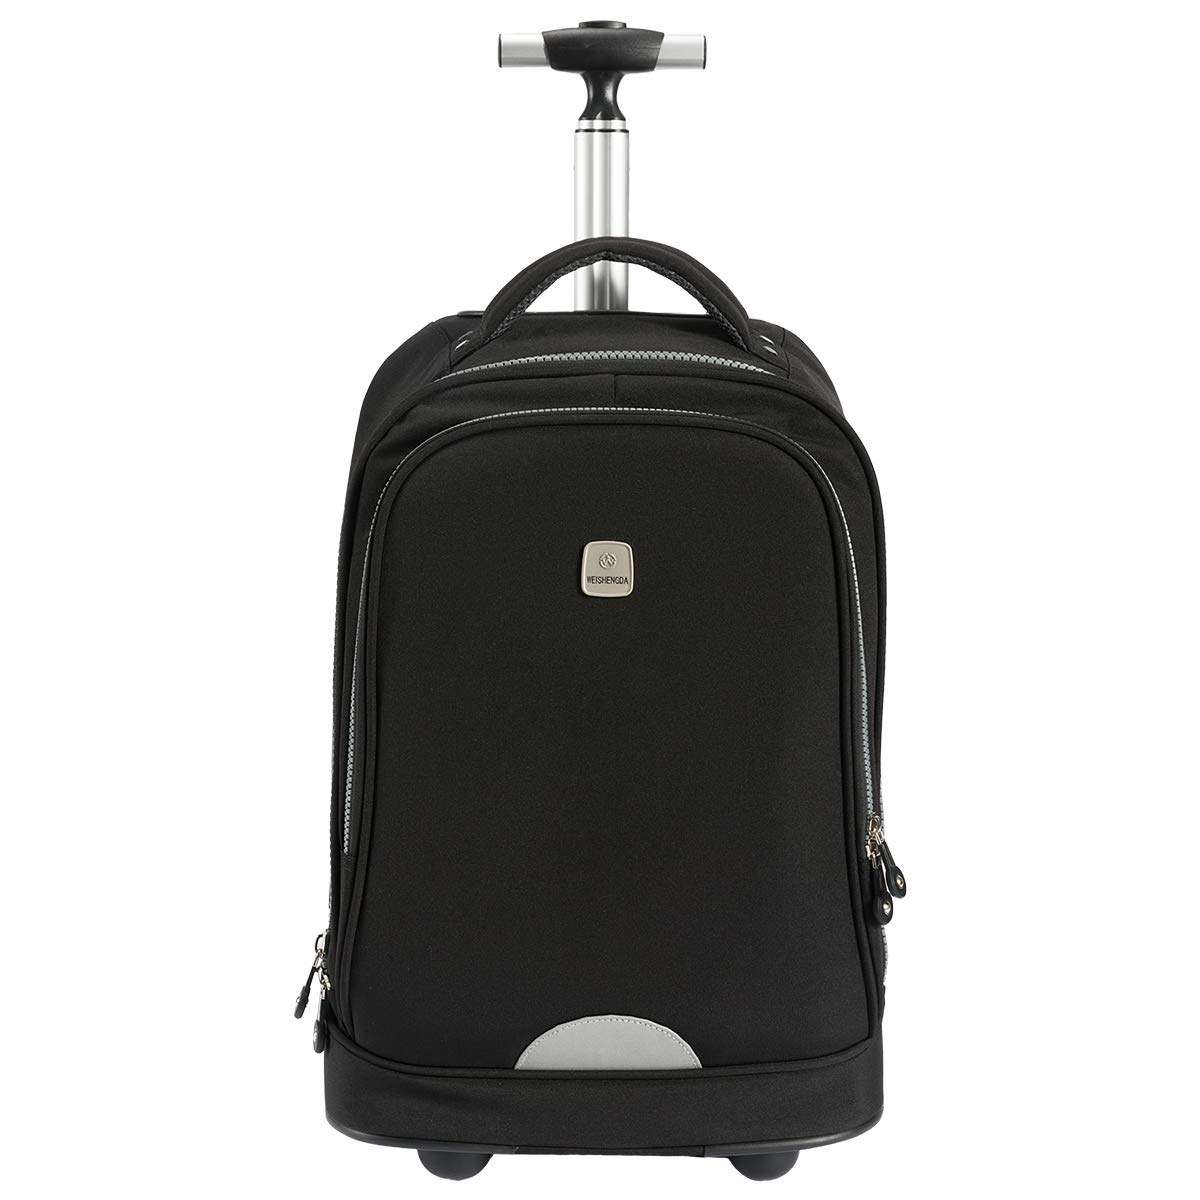 WEISHENGDA 18 inches Travel Wheeled Rolling Backpack for Business Adults and College Books Bag, Black